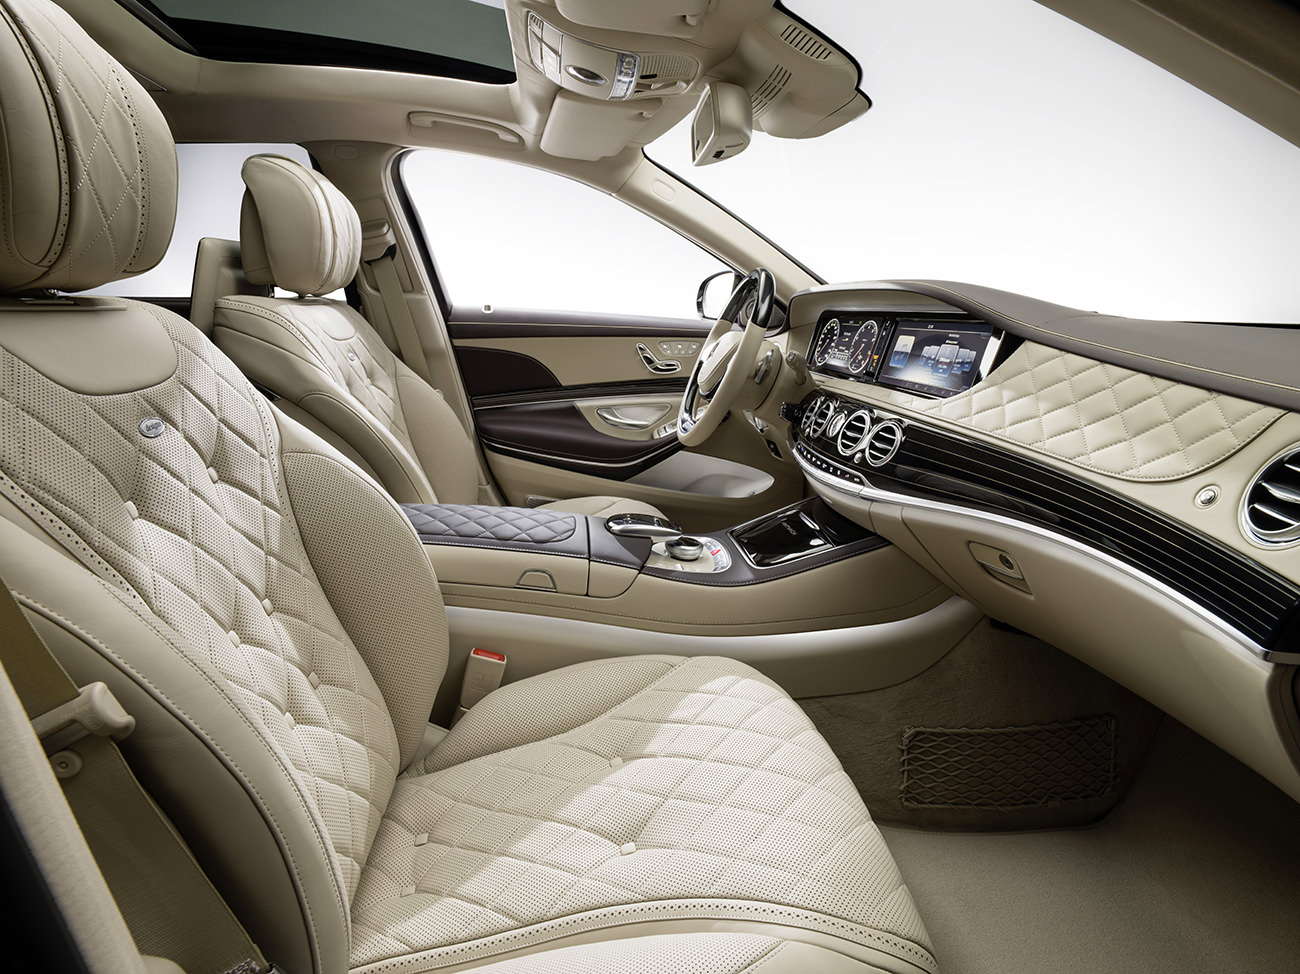 mercedes-maybach-S-class-5